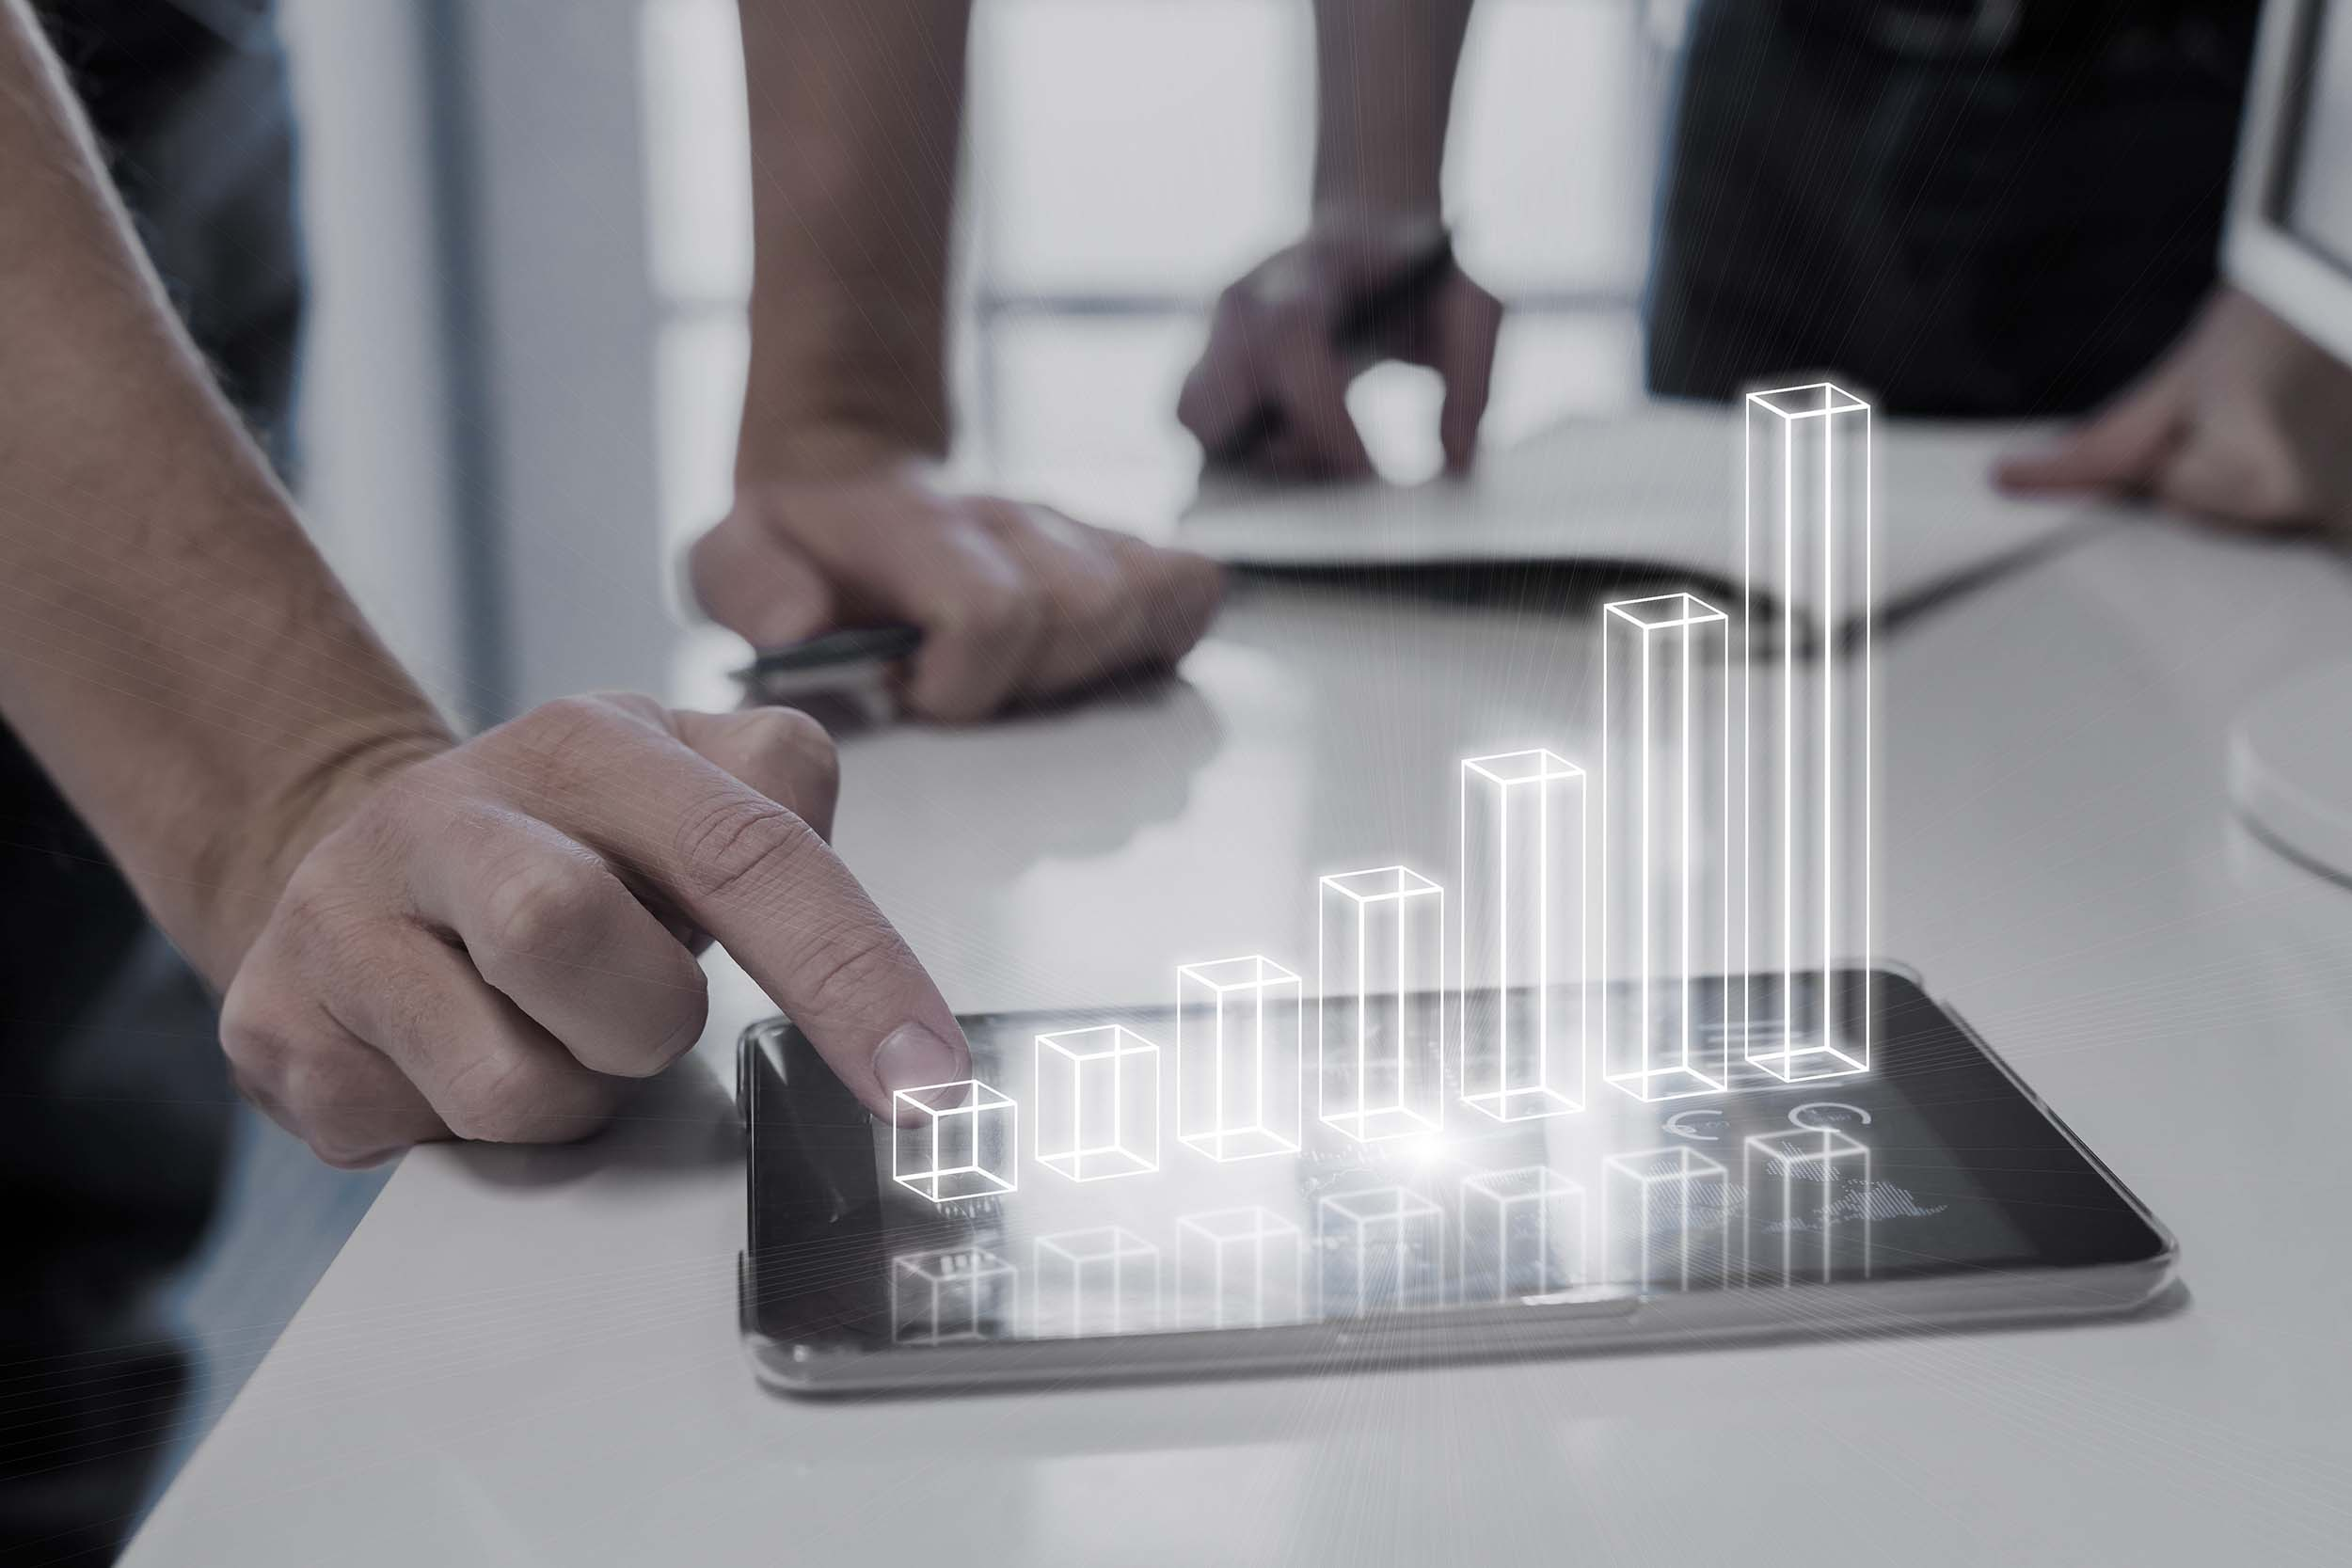 Augmented Reality Solutions by Cadesign form - a graph made of a digital projection sits on a table top